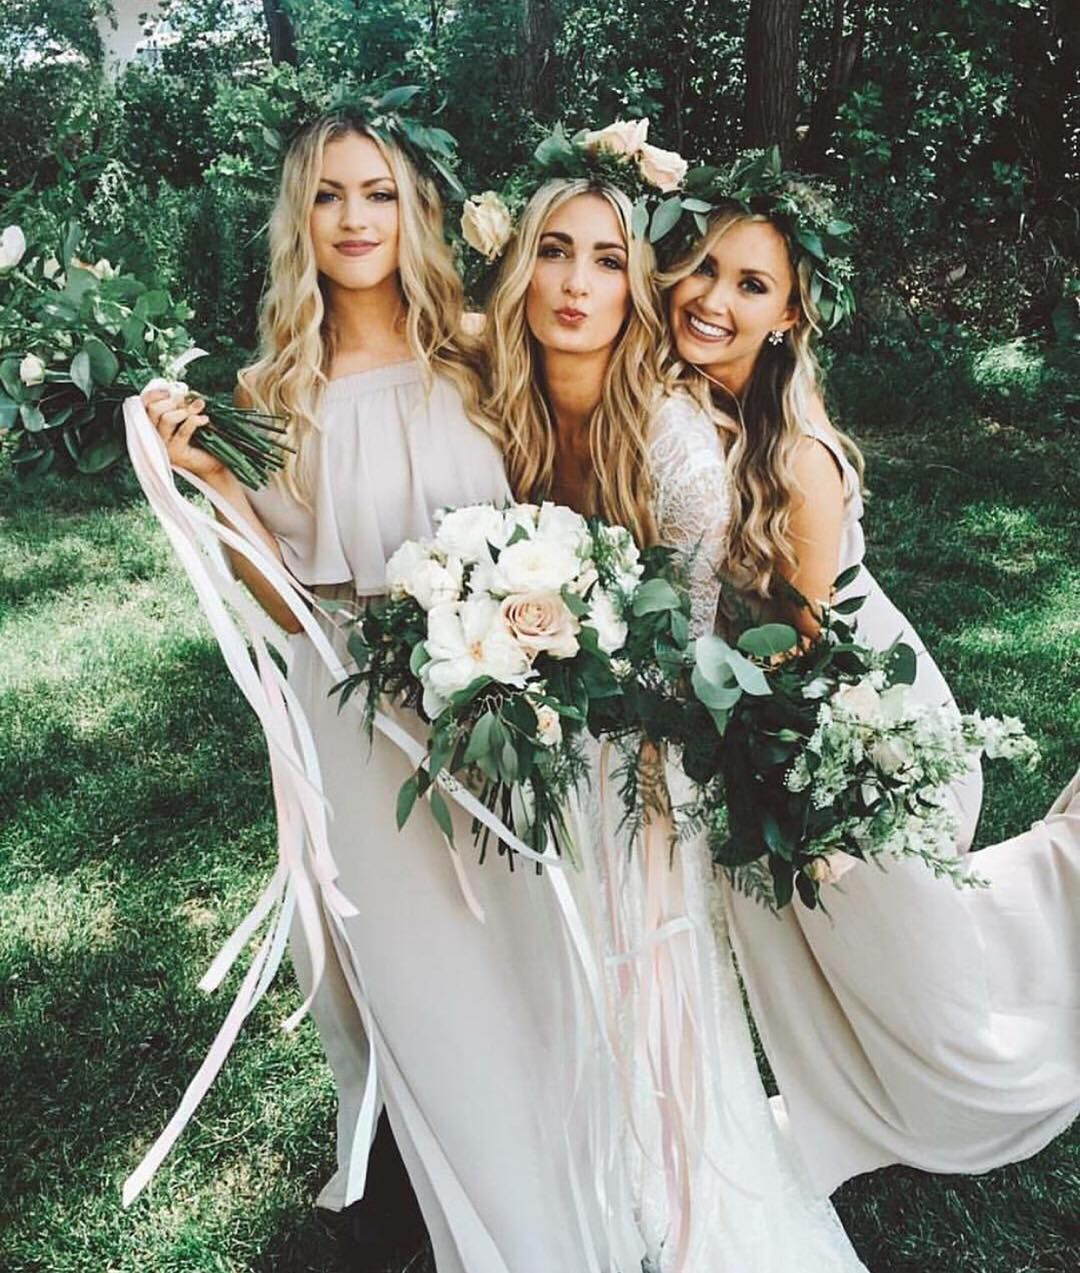 A bride and her besties in show me the ring bridesmaid dresses a bride and her besties in show me the ring bridesmaid dresses mumu weddings ombrellifo Images